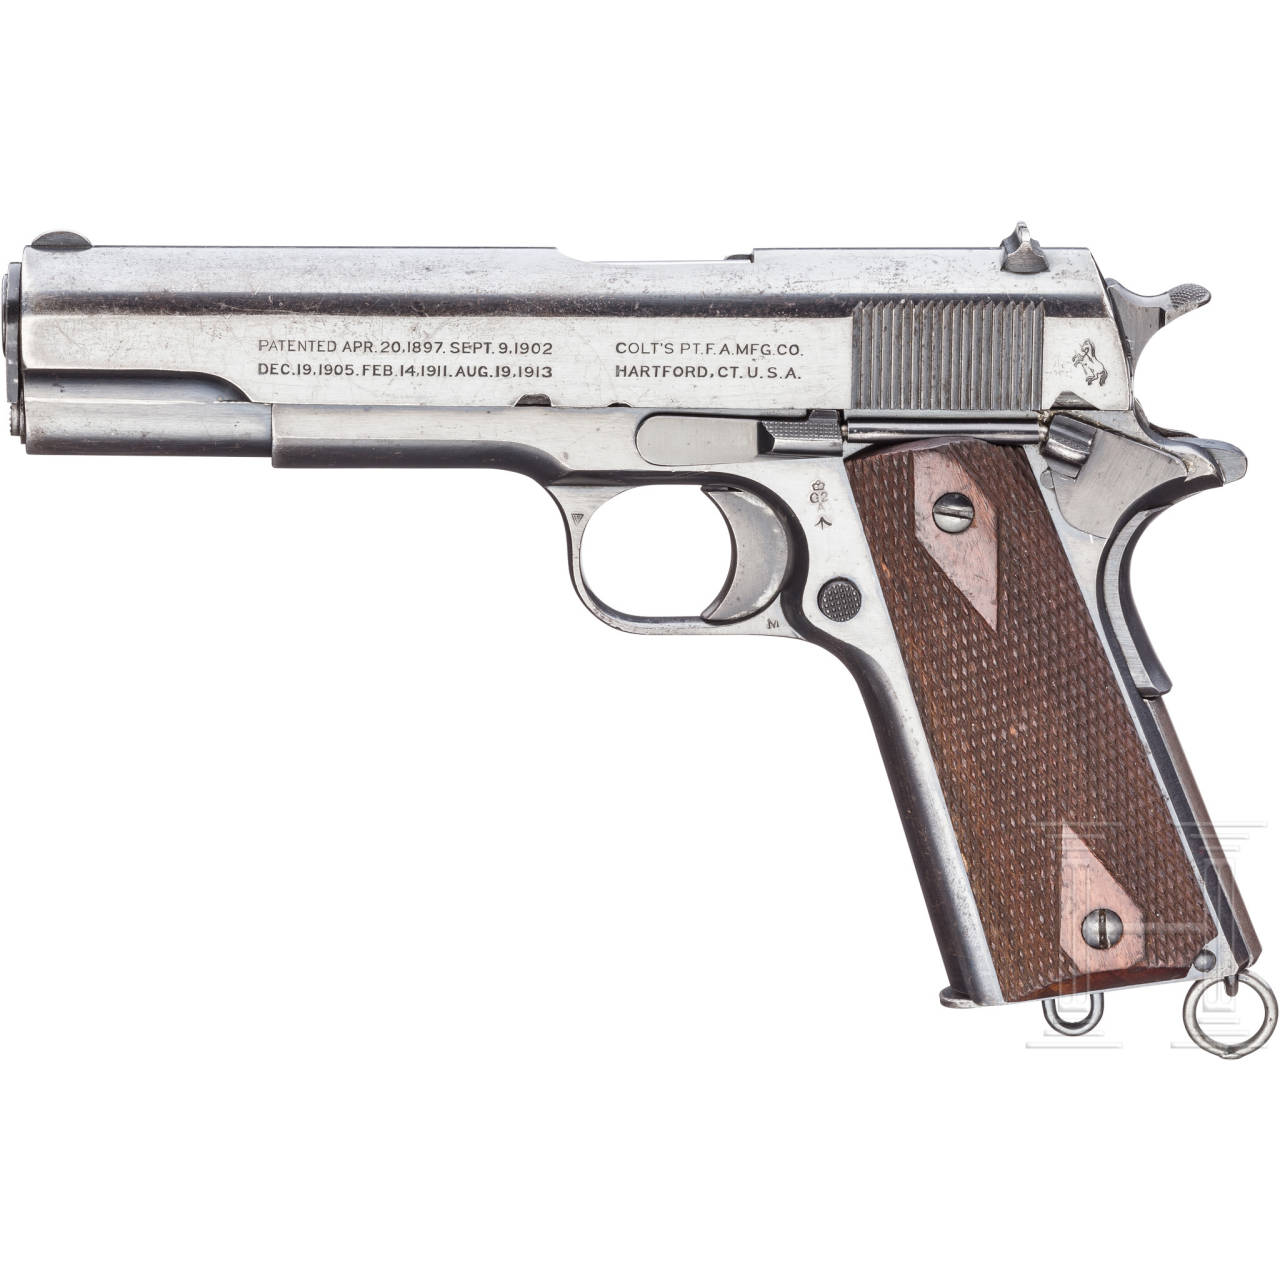 Colt Mod. 1911 Government Model, British Contract, Luftwaffe